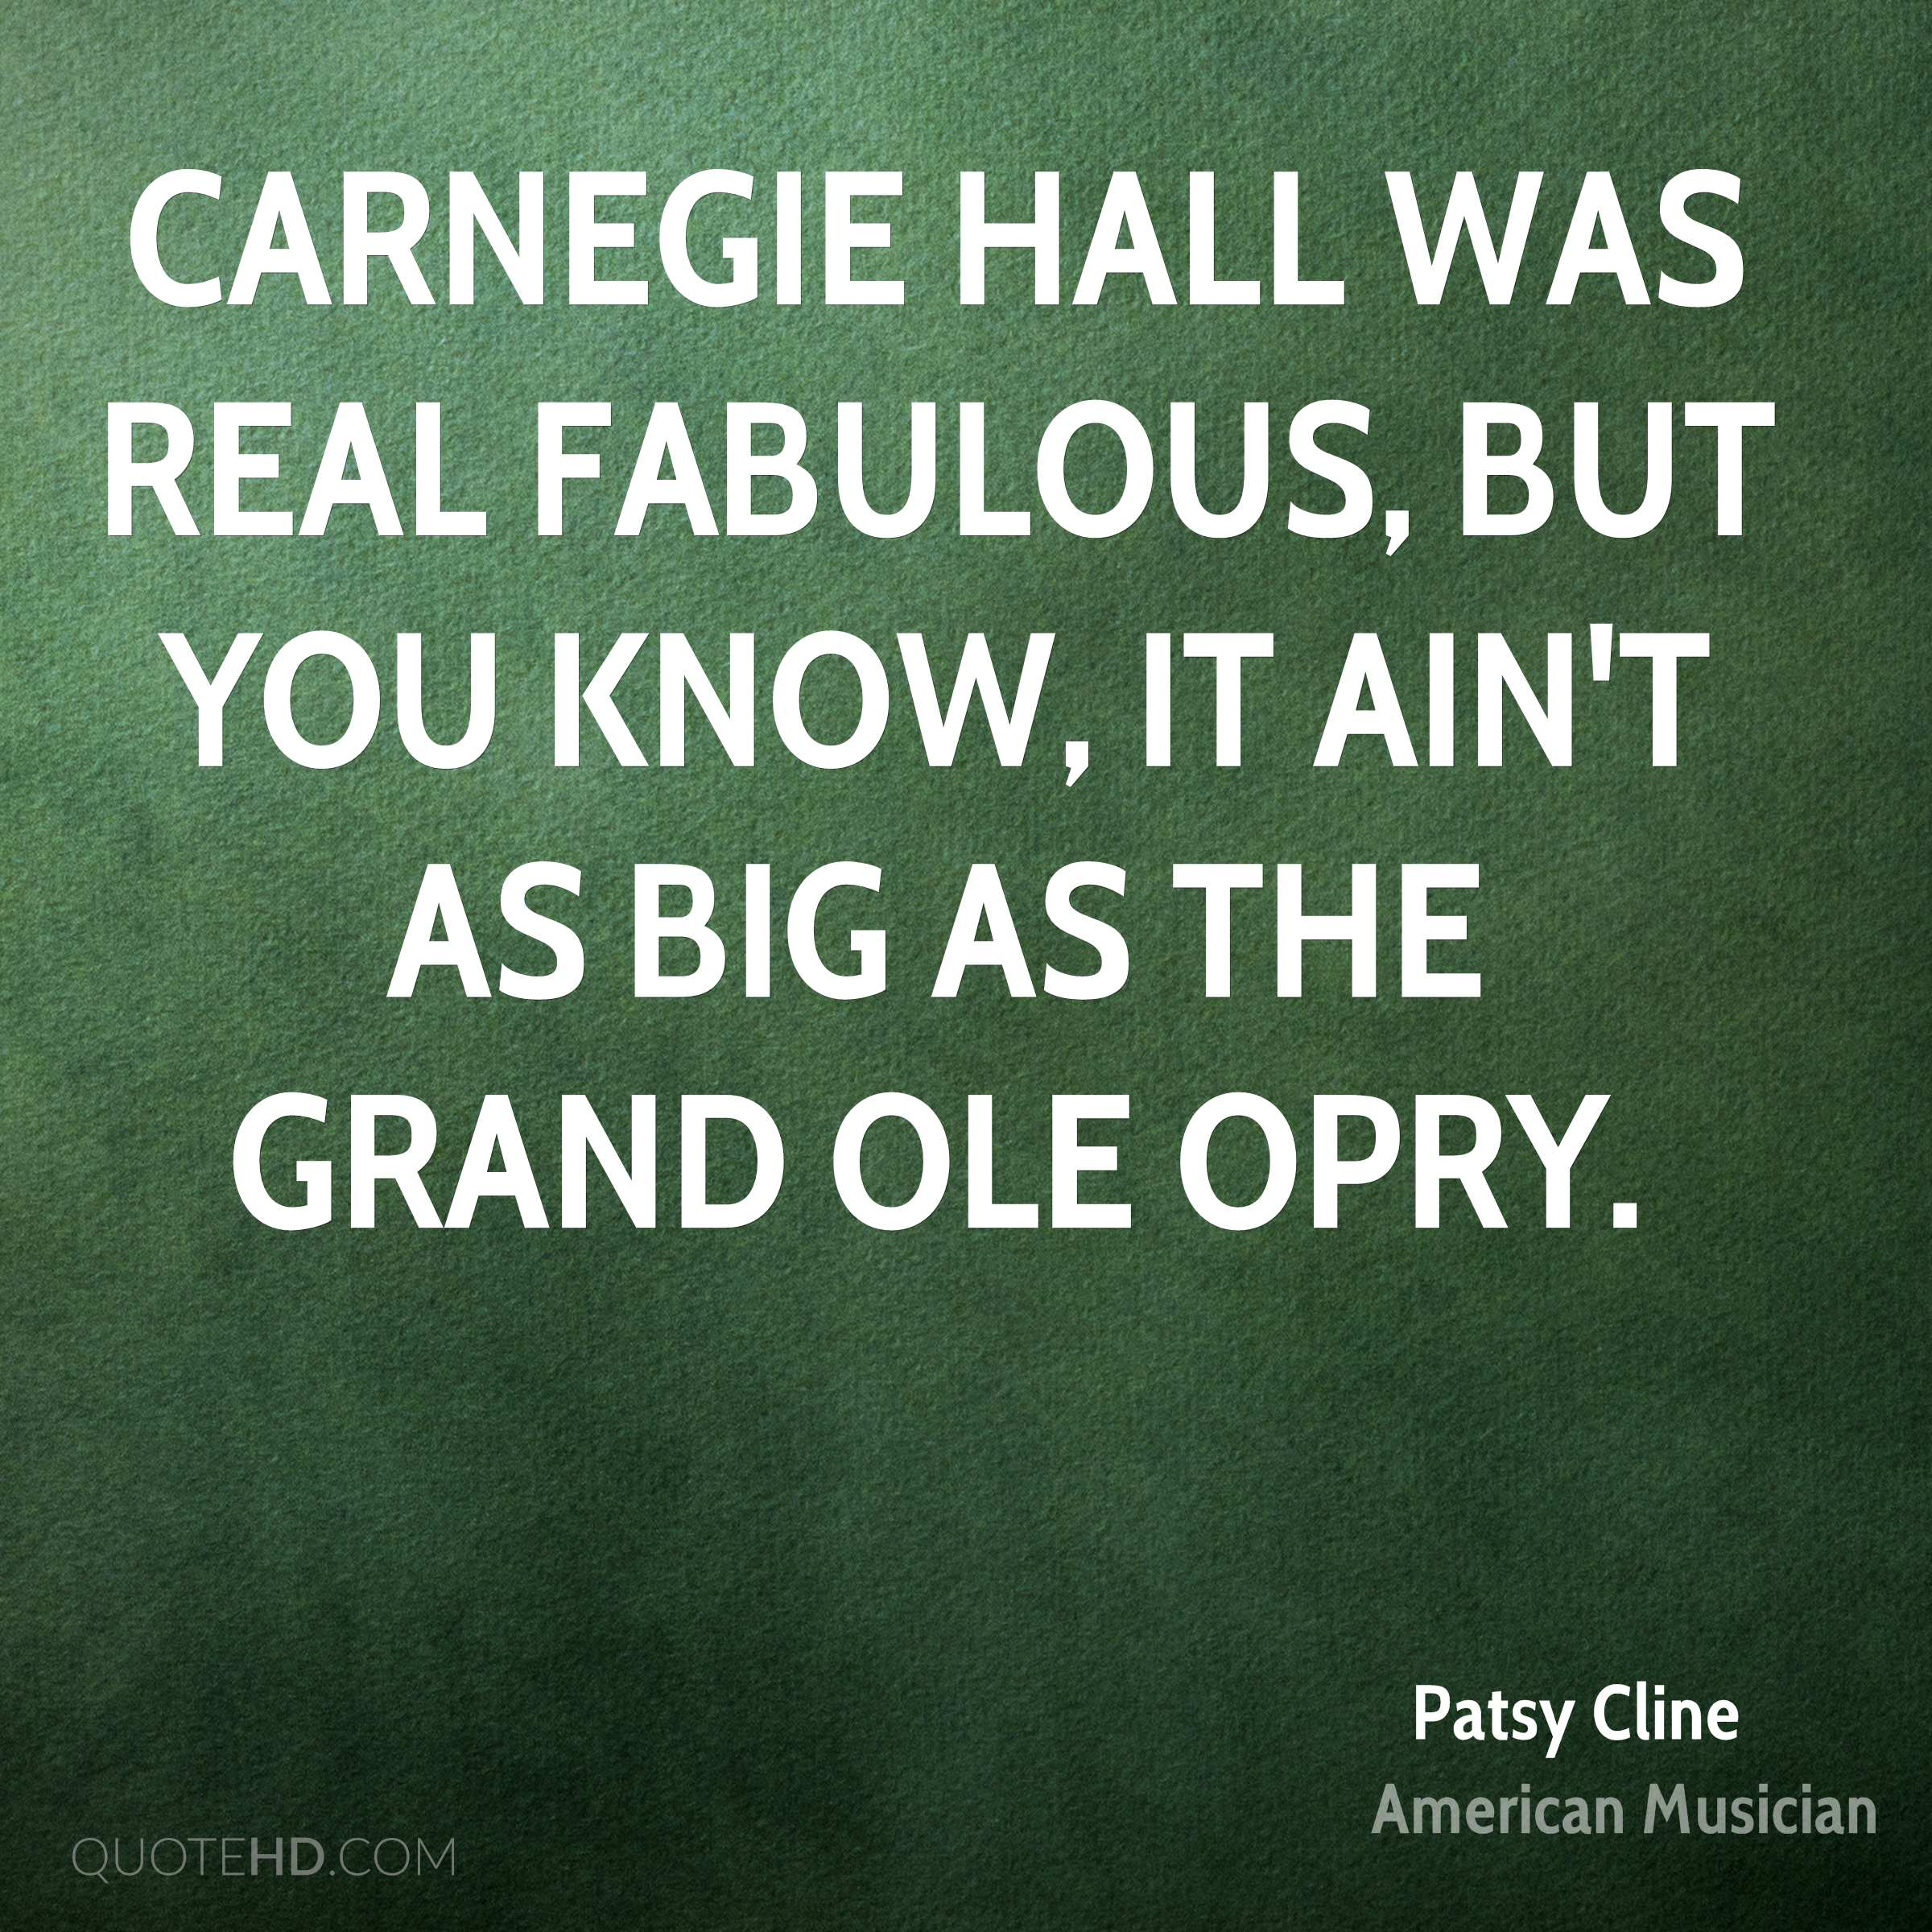 Carnegie Hall was real fabulous, but you know, it ain't as big as the Grand Ole Opry.